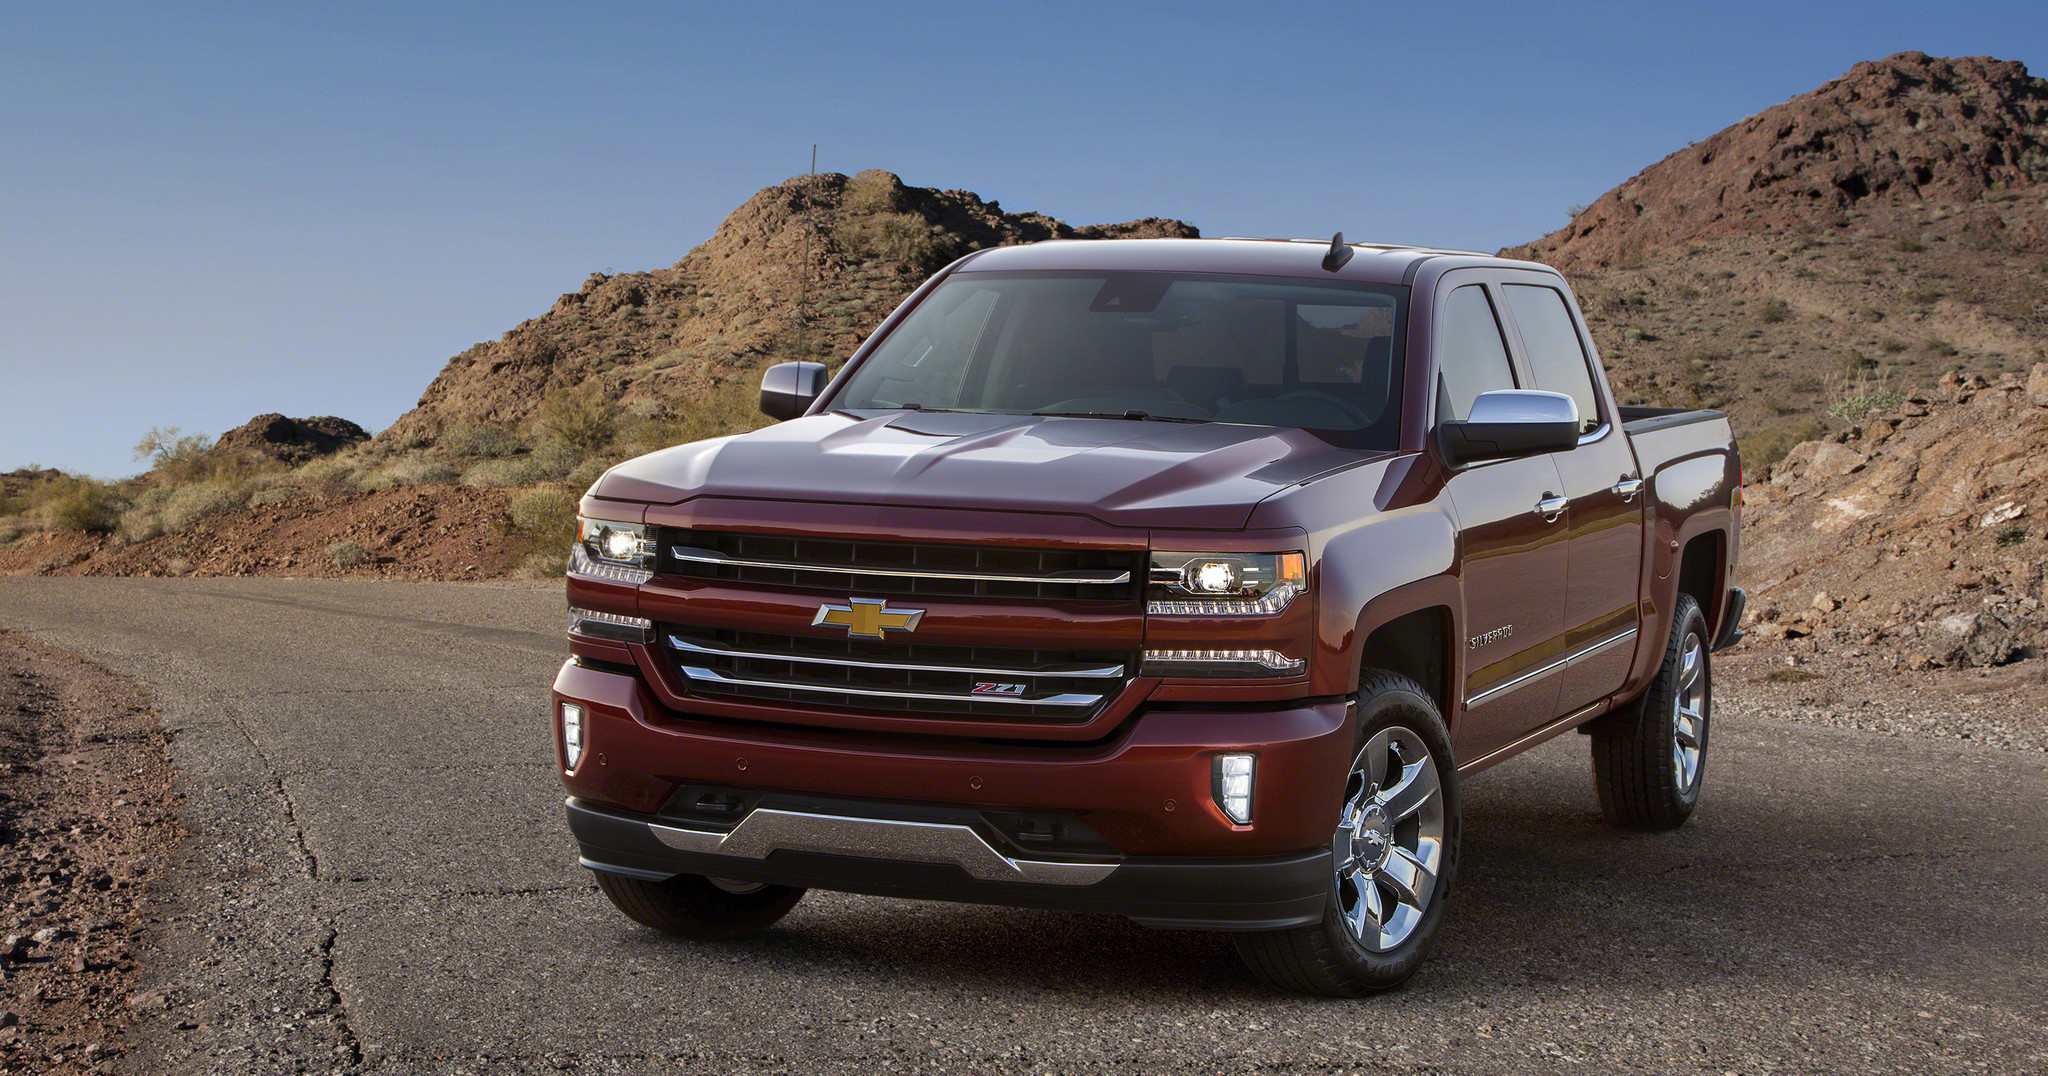 2016 chevy silverado updated to keep up with ford f 150 chicago tribune